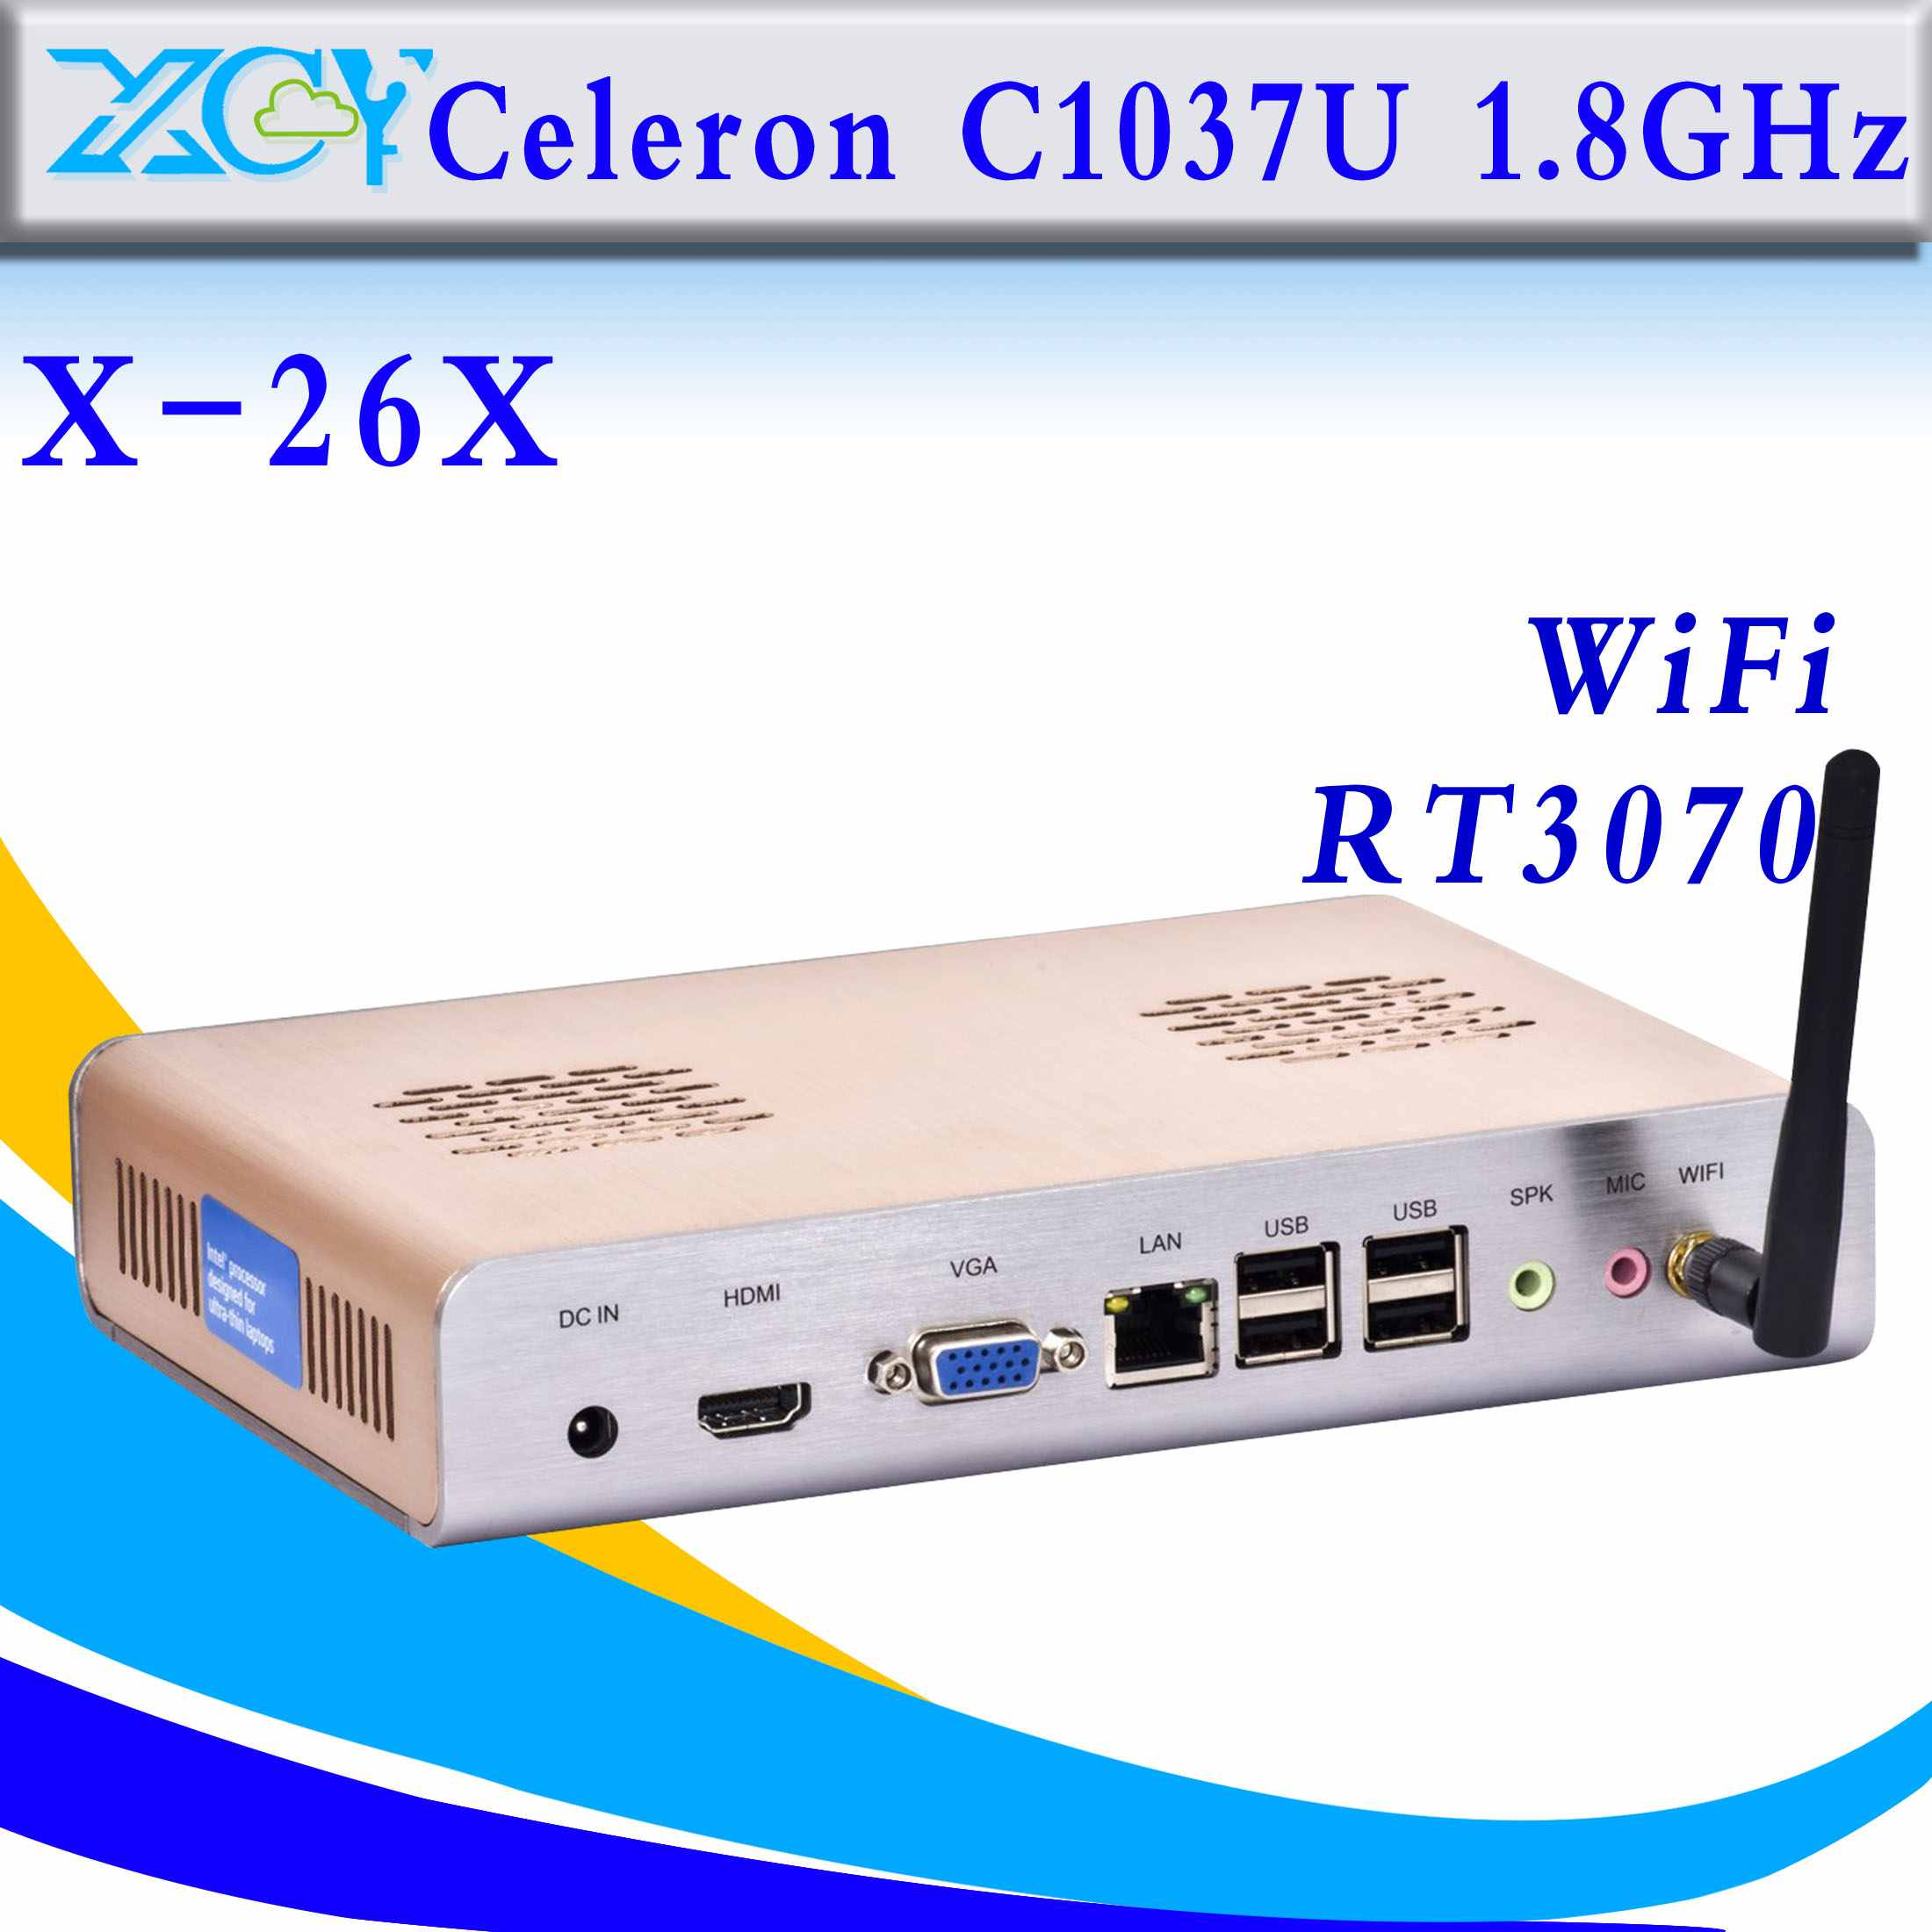 High Performance Intel C1037 Industrial computer arm embedded computers fanless industrial computer networking support HDMI(China (Mainland))